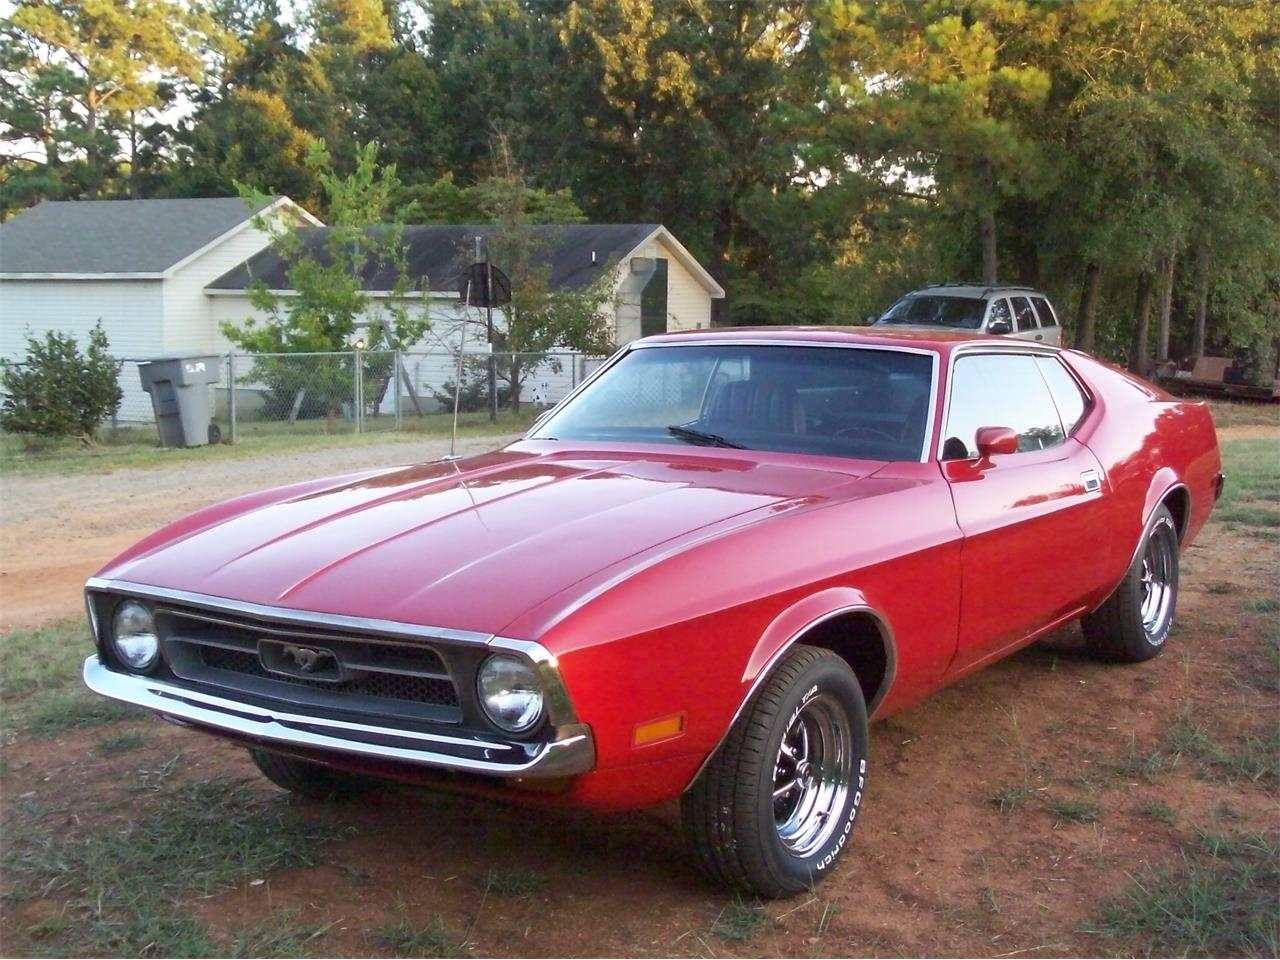 Large Picture of 1971 Ford Mustang located in North Carolina - $15,000.00 - DBCV